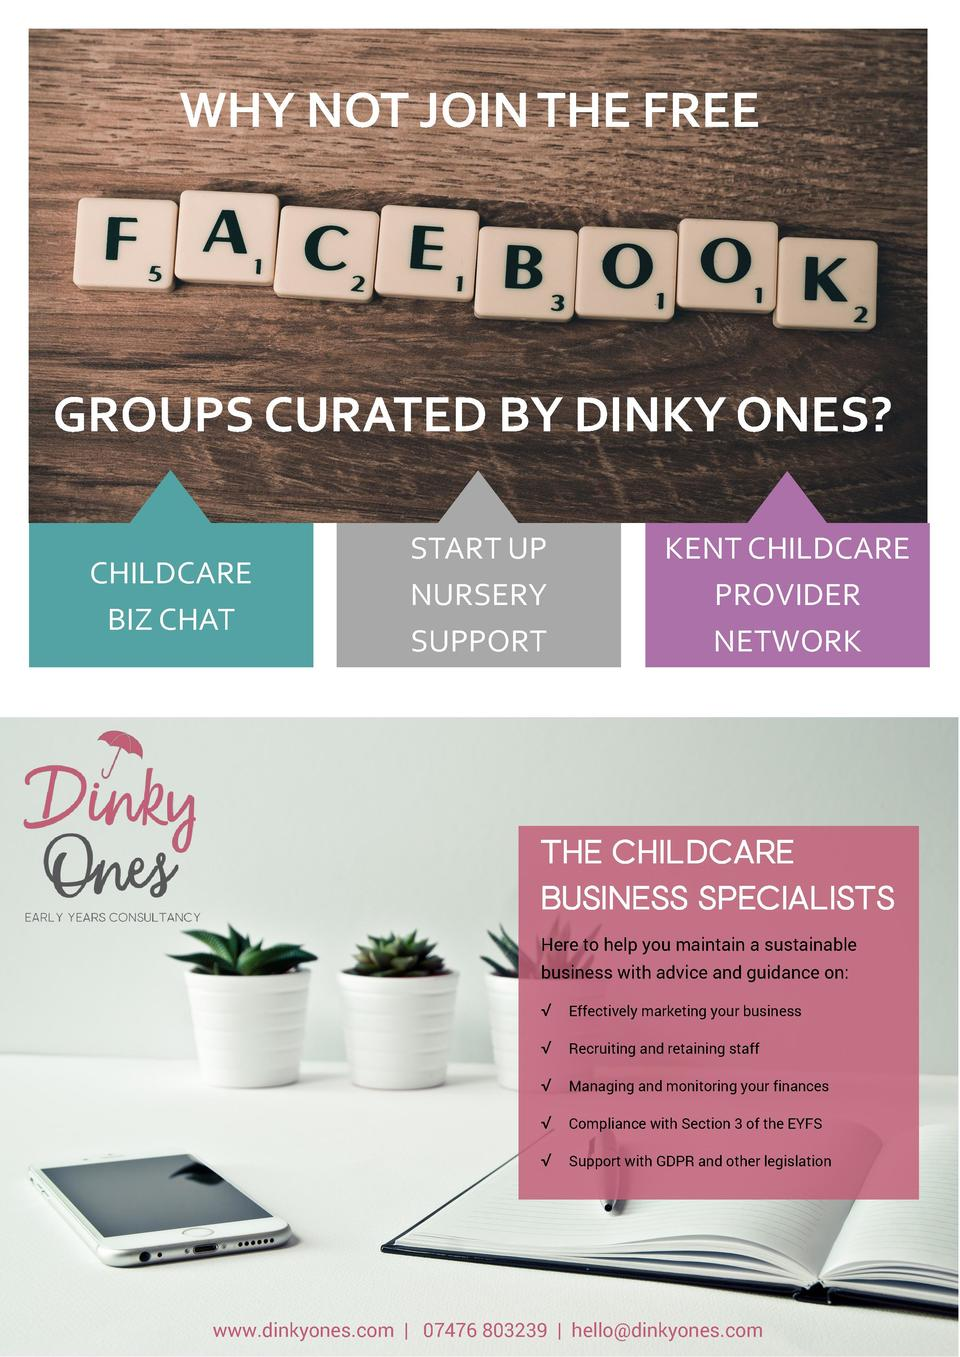 WHY NOT JOIN THE FREE  GROUPS CURATED BY DINKY ONES  CHILDCARE BIZ CHAT  START UP NURSERY SUPPORT  KENT CHILDCARE PROVIDER...